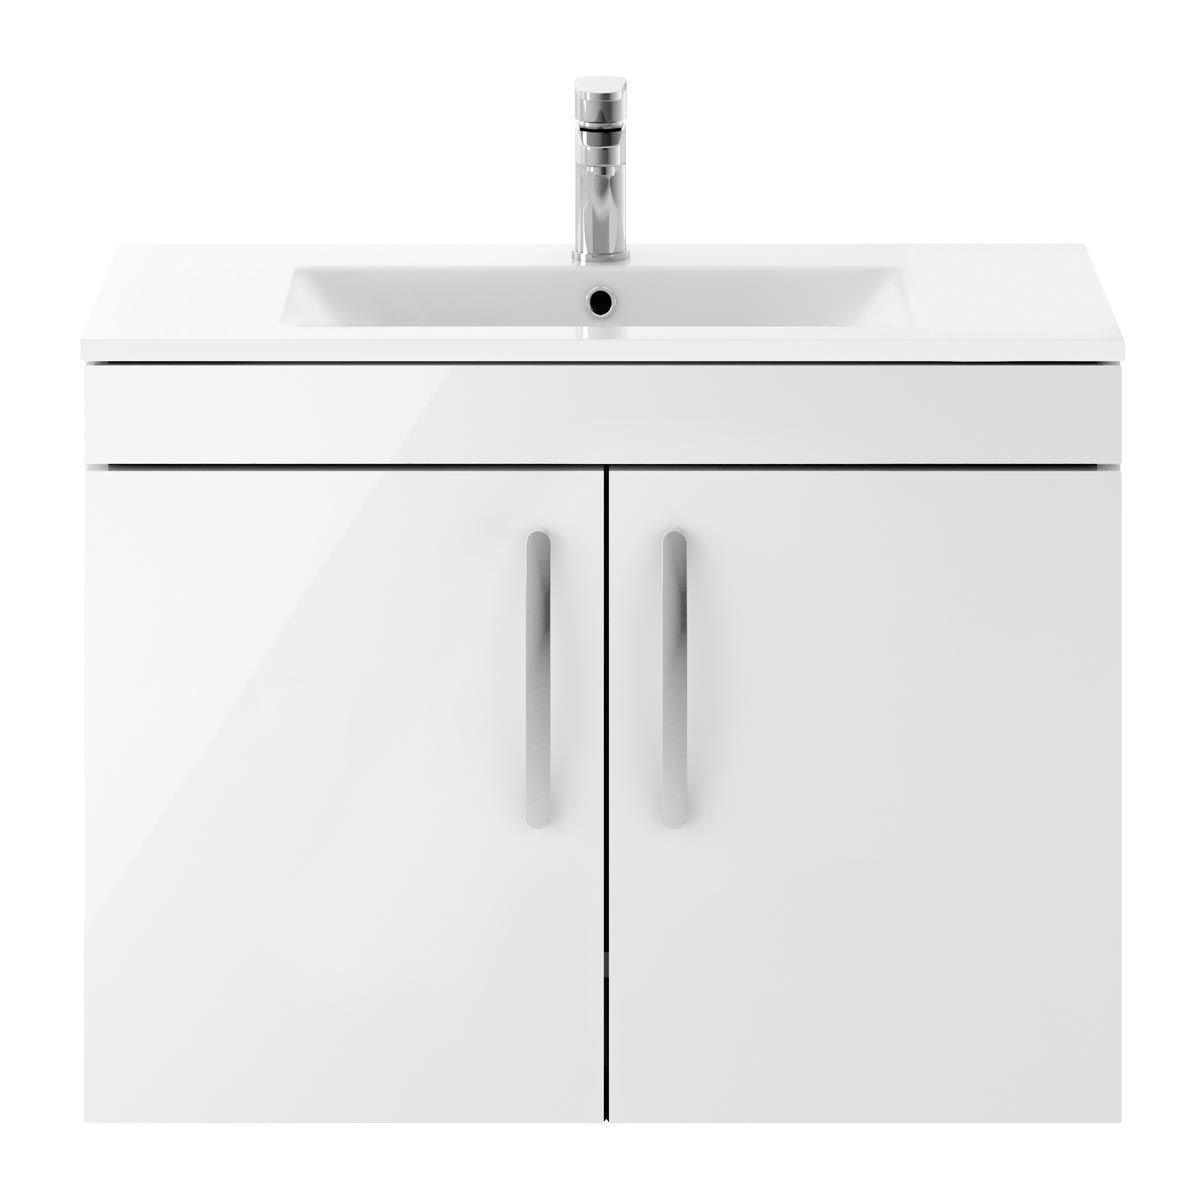 Nuie Athena Gloss White 2 Door Wall Hung Vanity Unit with 18mm Profile Basin 800mm